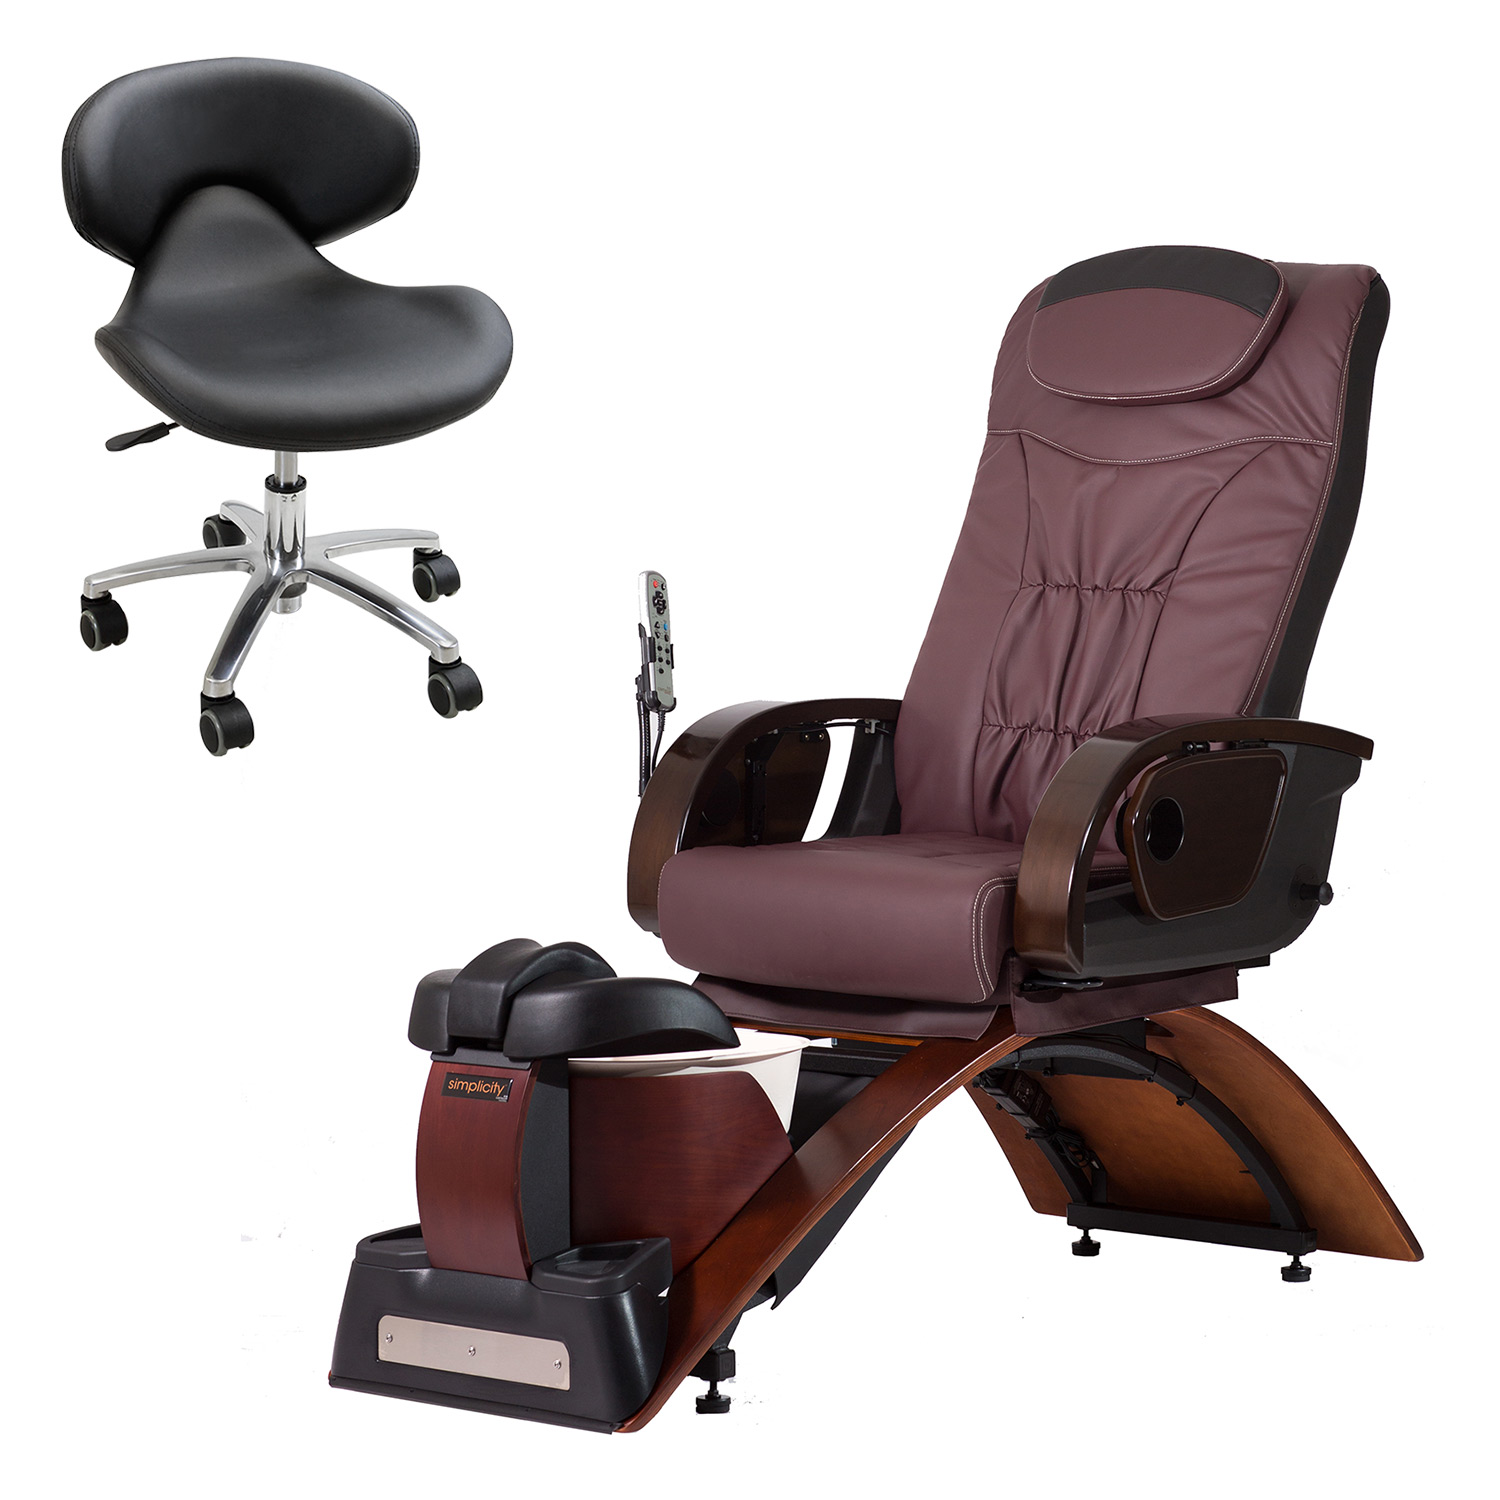 Continuum Simplicity Plus-LE No Plumbing Pedicure Spa Chair  main product image